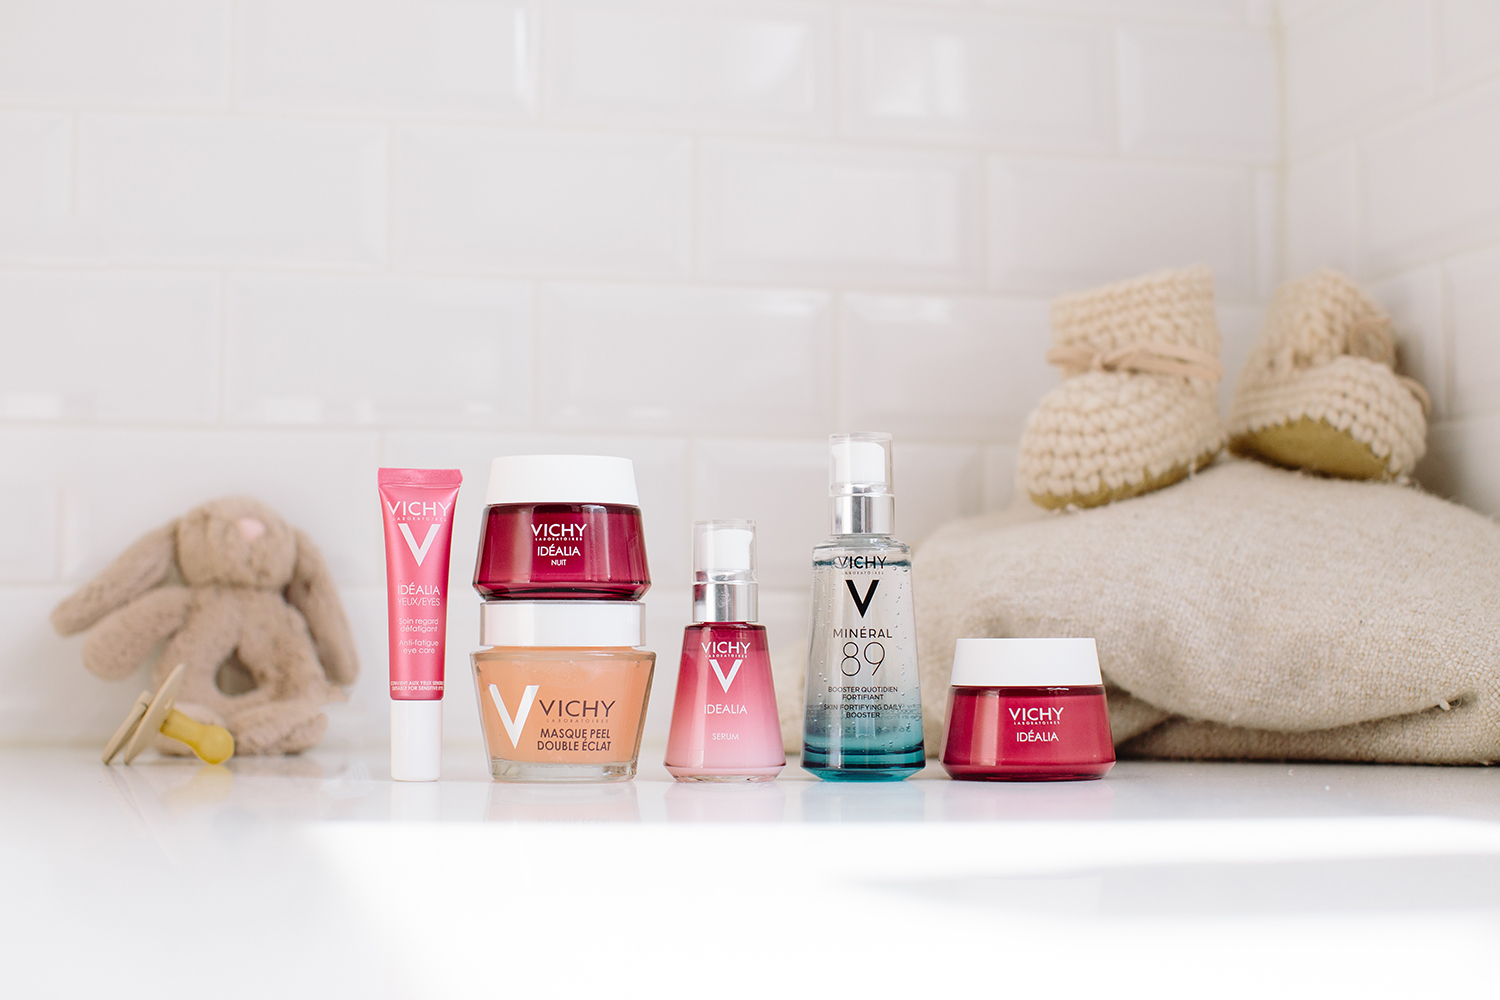 vichy-mommy-moments-with-idealia-33.jpg